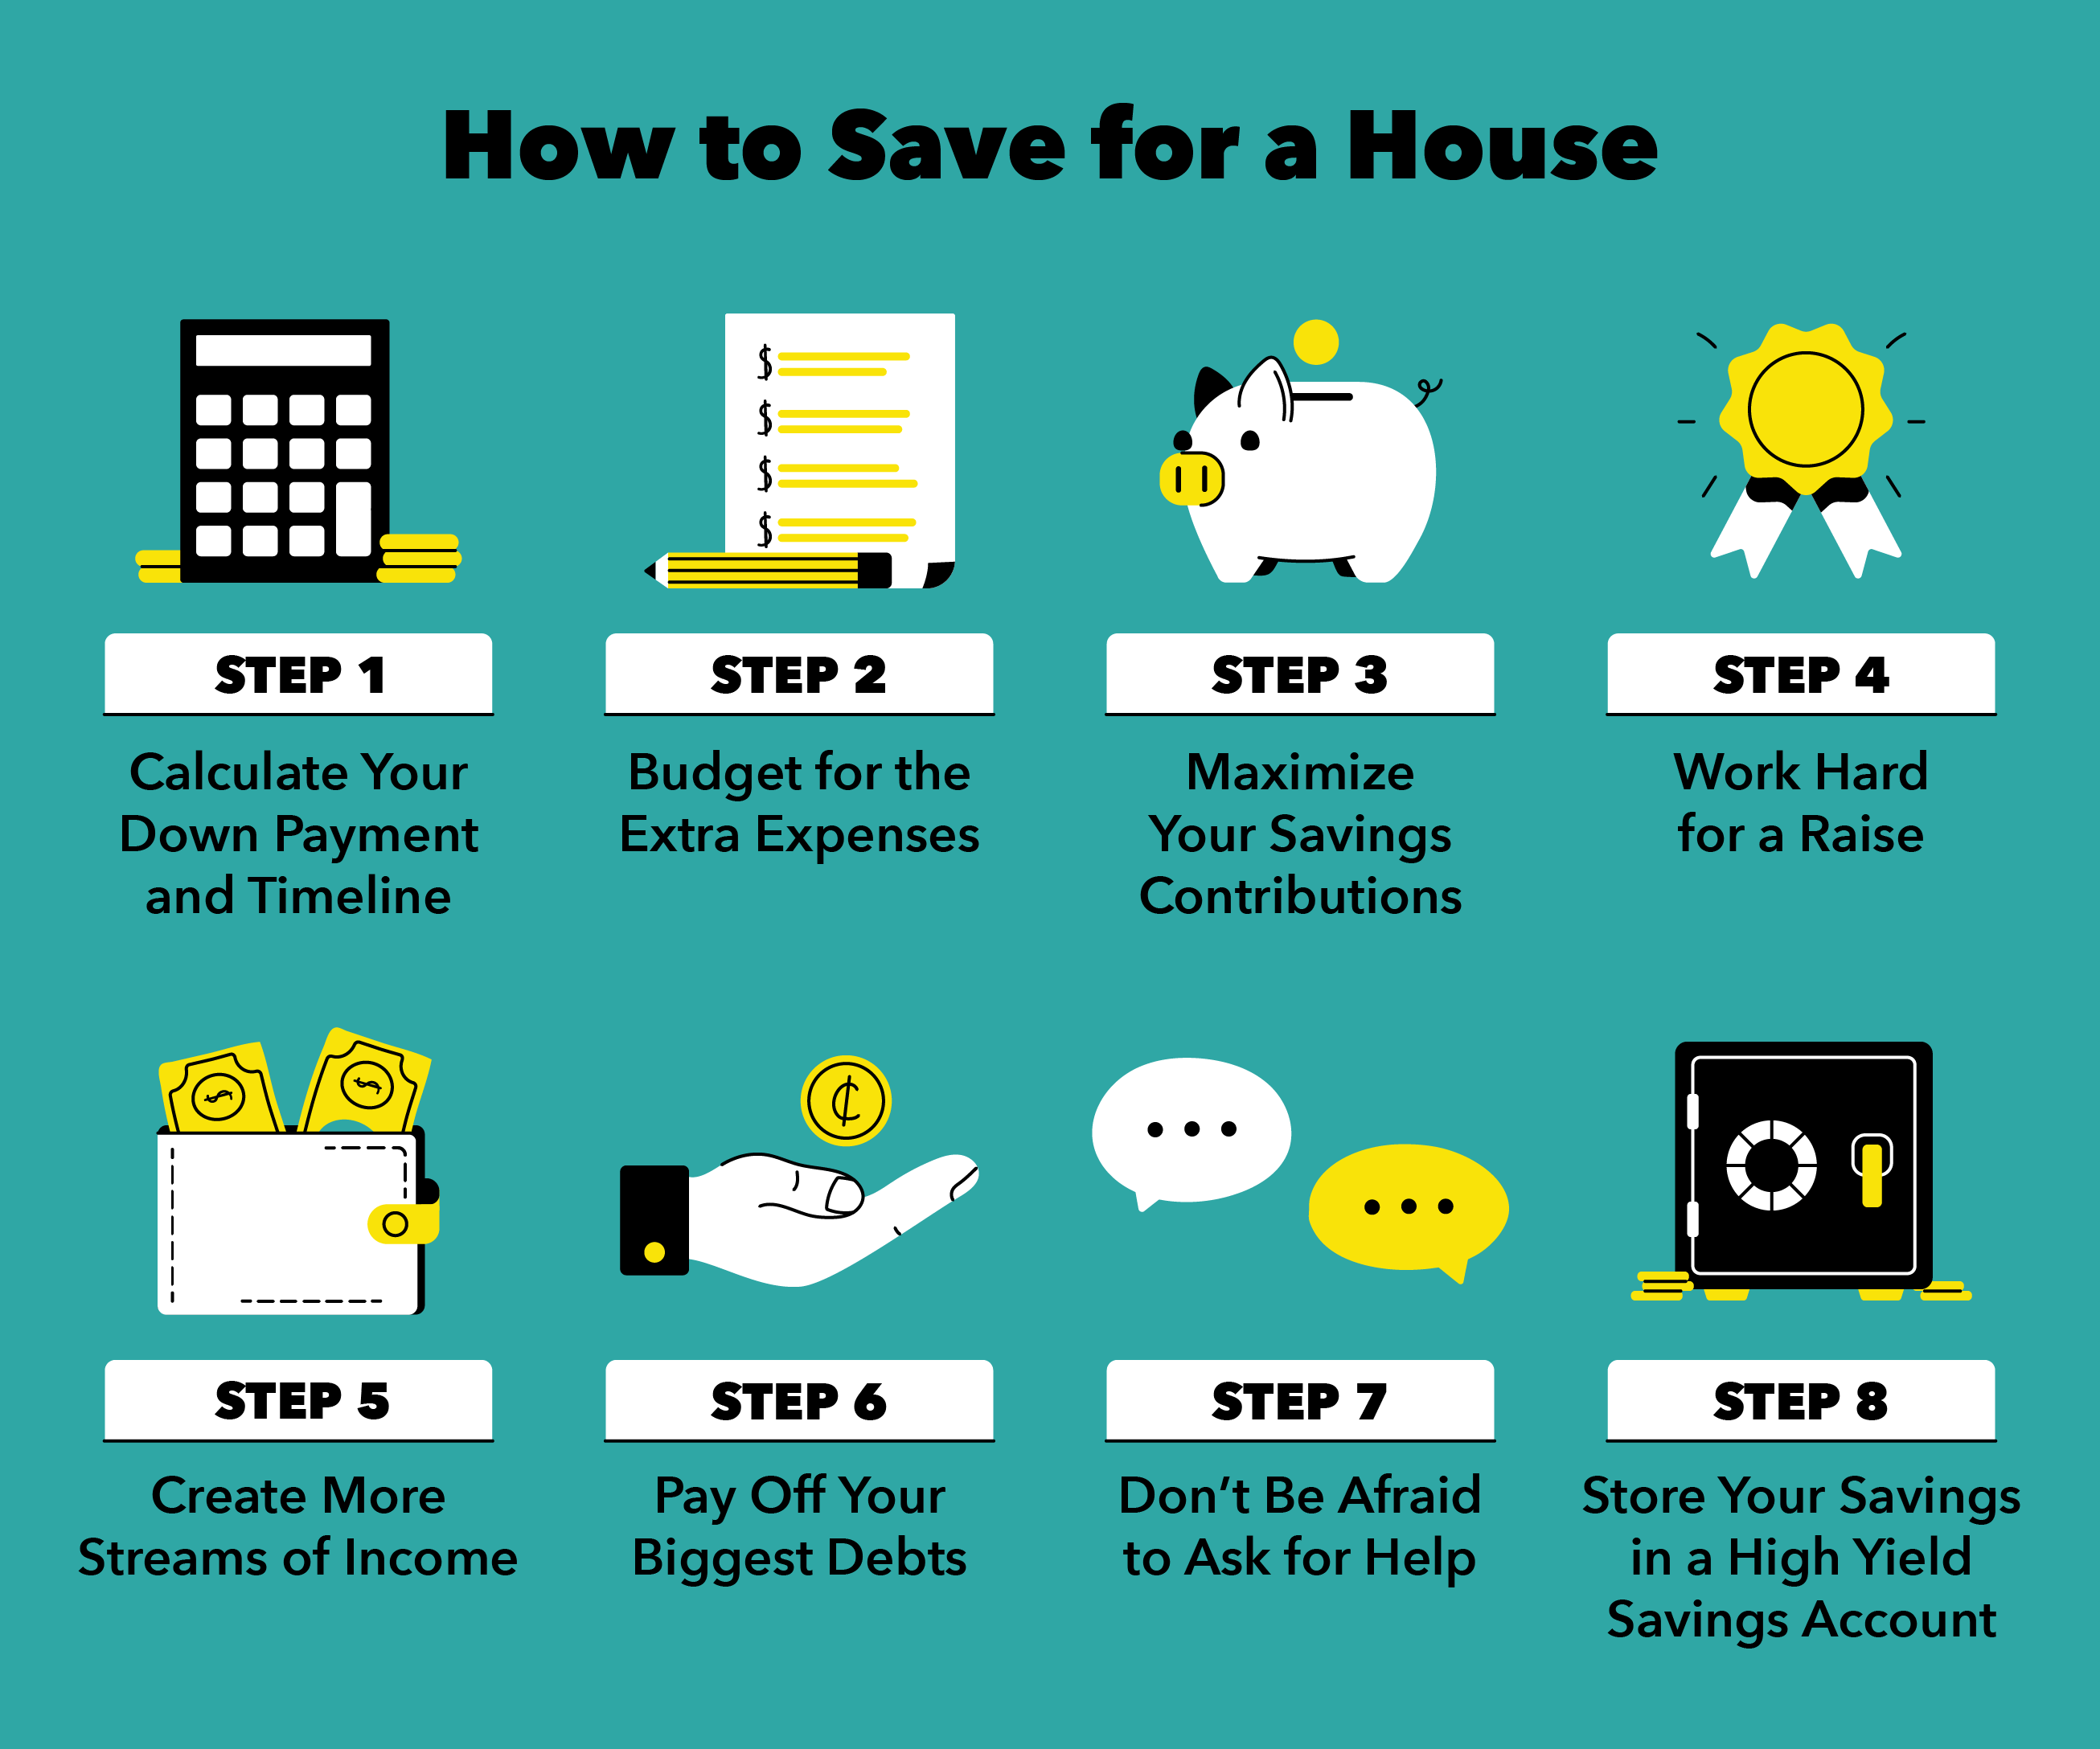 How to save for a house